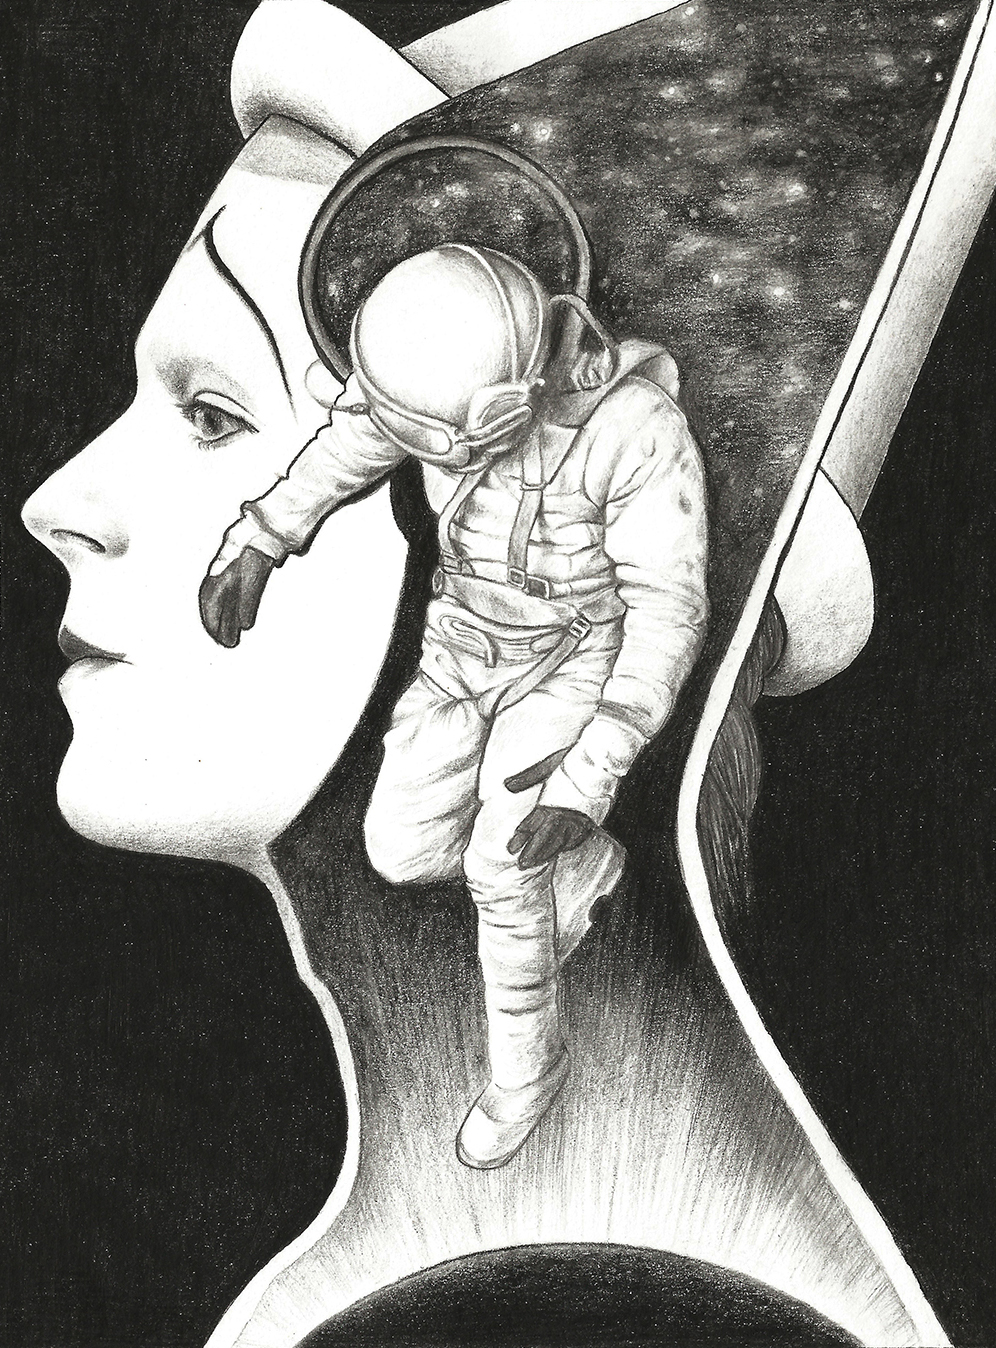 The_Man_Who_Was_In_Space_Lucy_Salgado